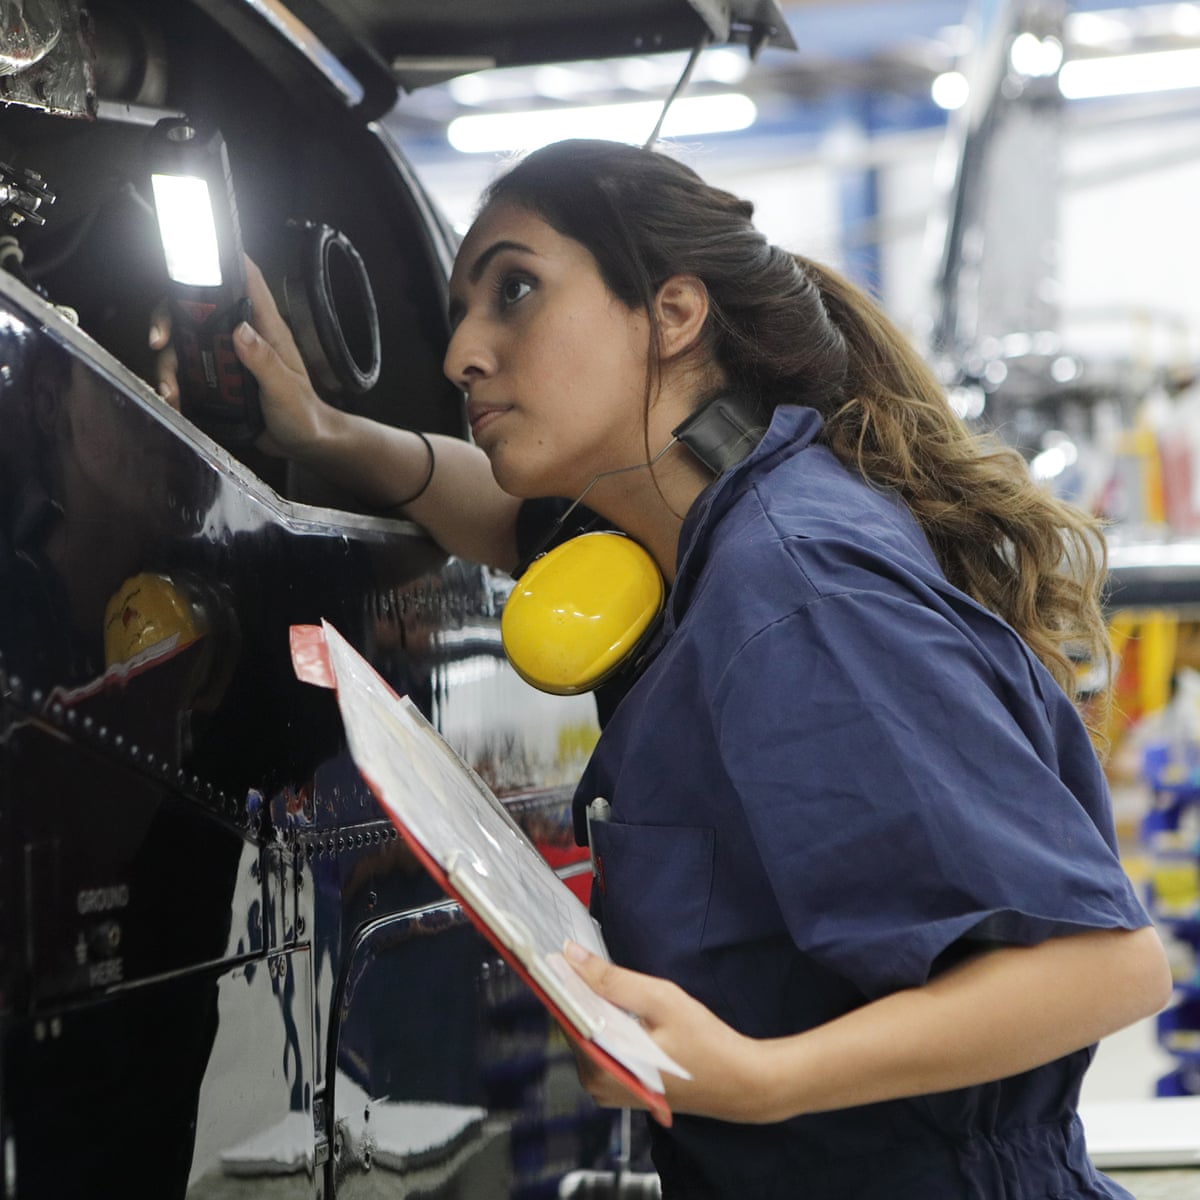 Women In Engineering It S An Exciting Time For Females To Join The Sector Guardian Careers The Guardian